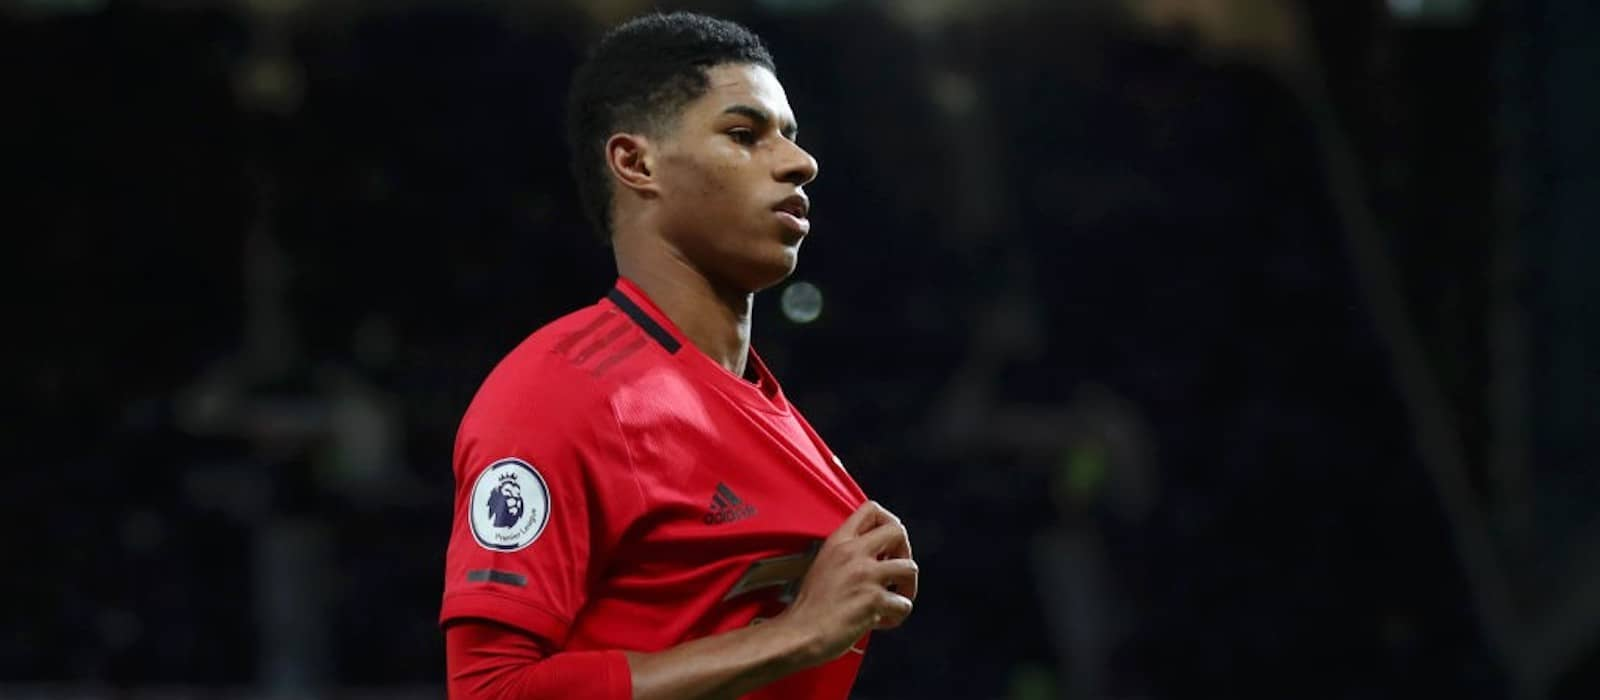 Marcus Rashford blows Manchester United fans away with goalscoring performance